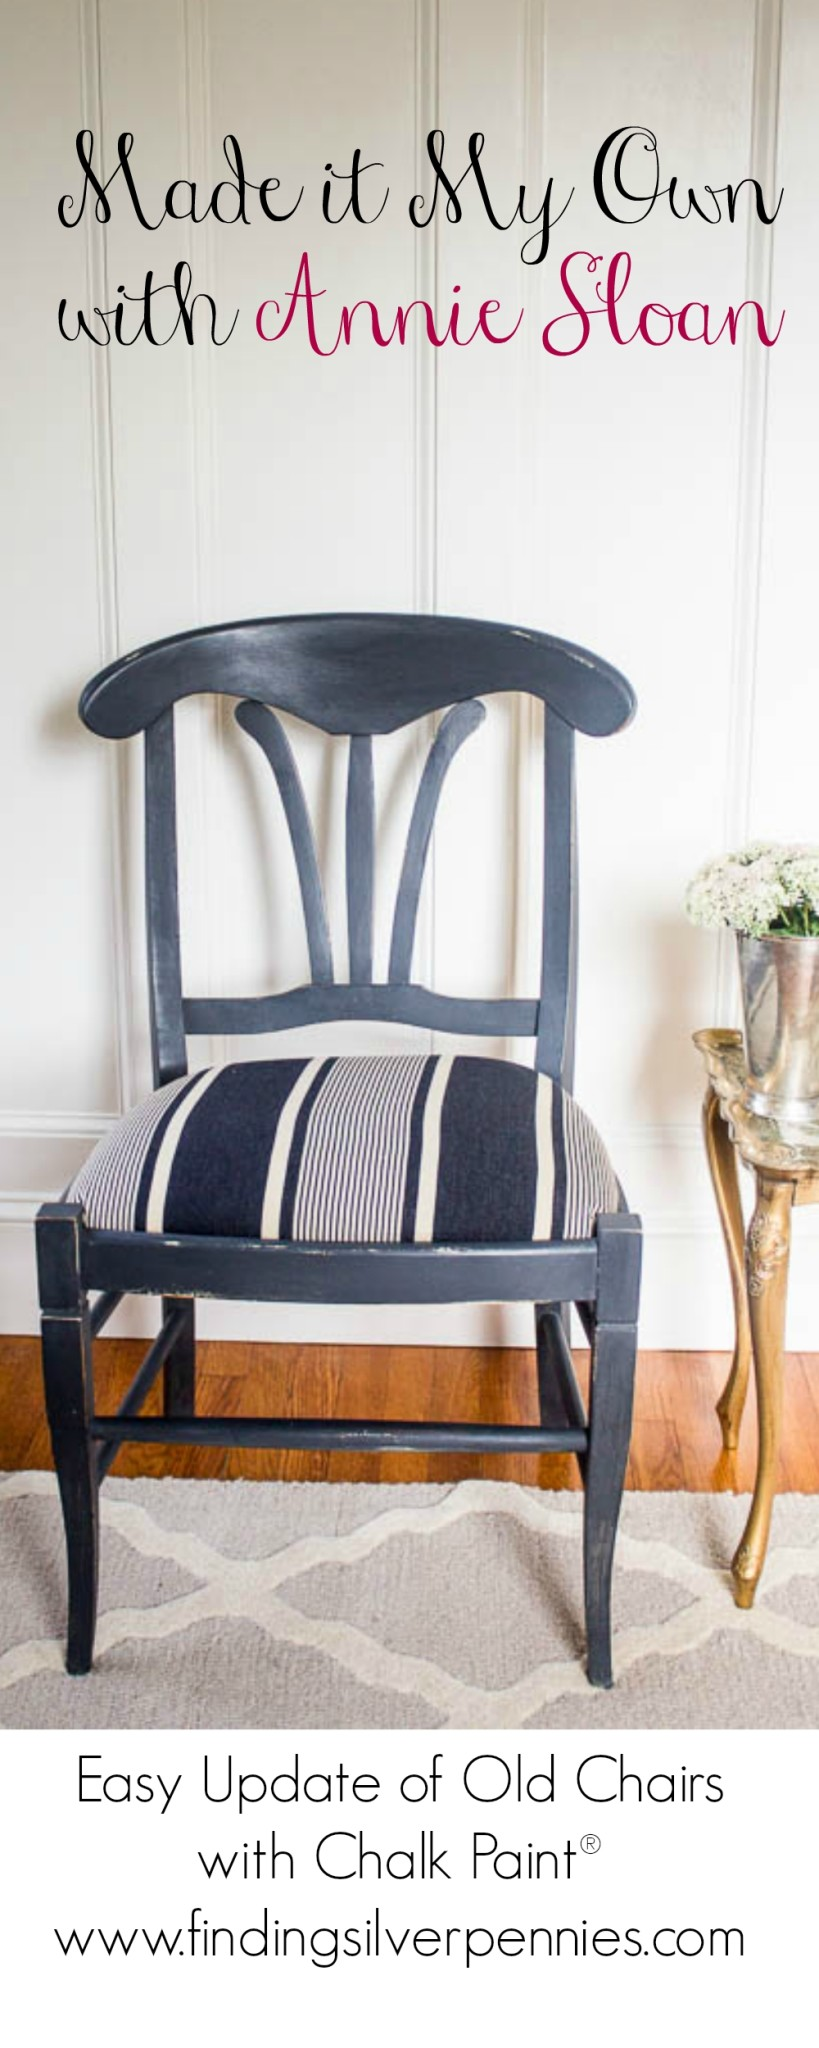 Made It My Own Chairs with Chalk Paint